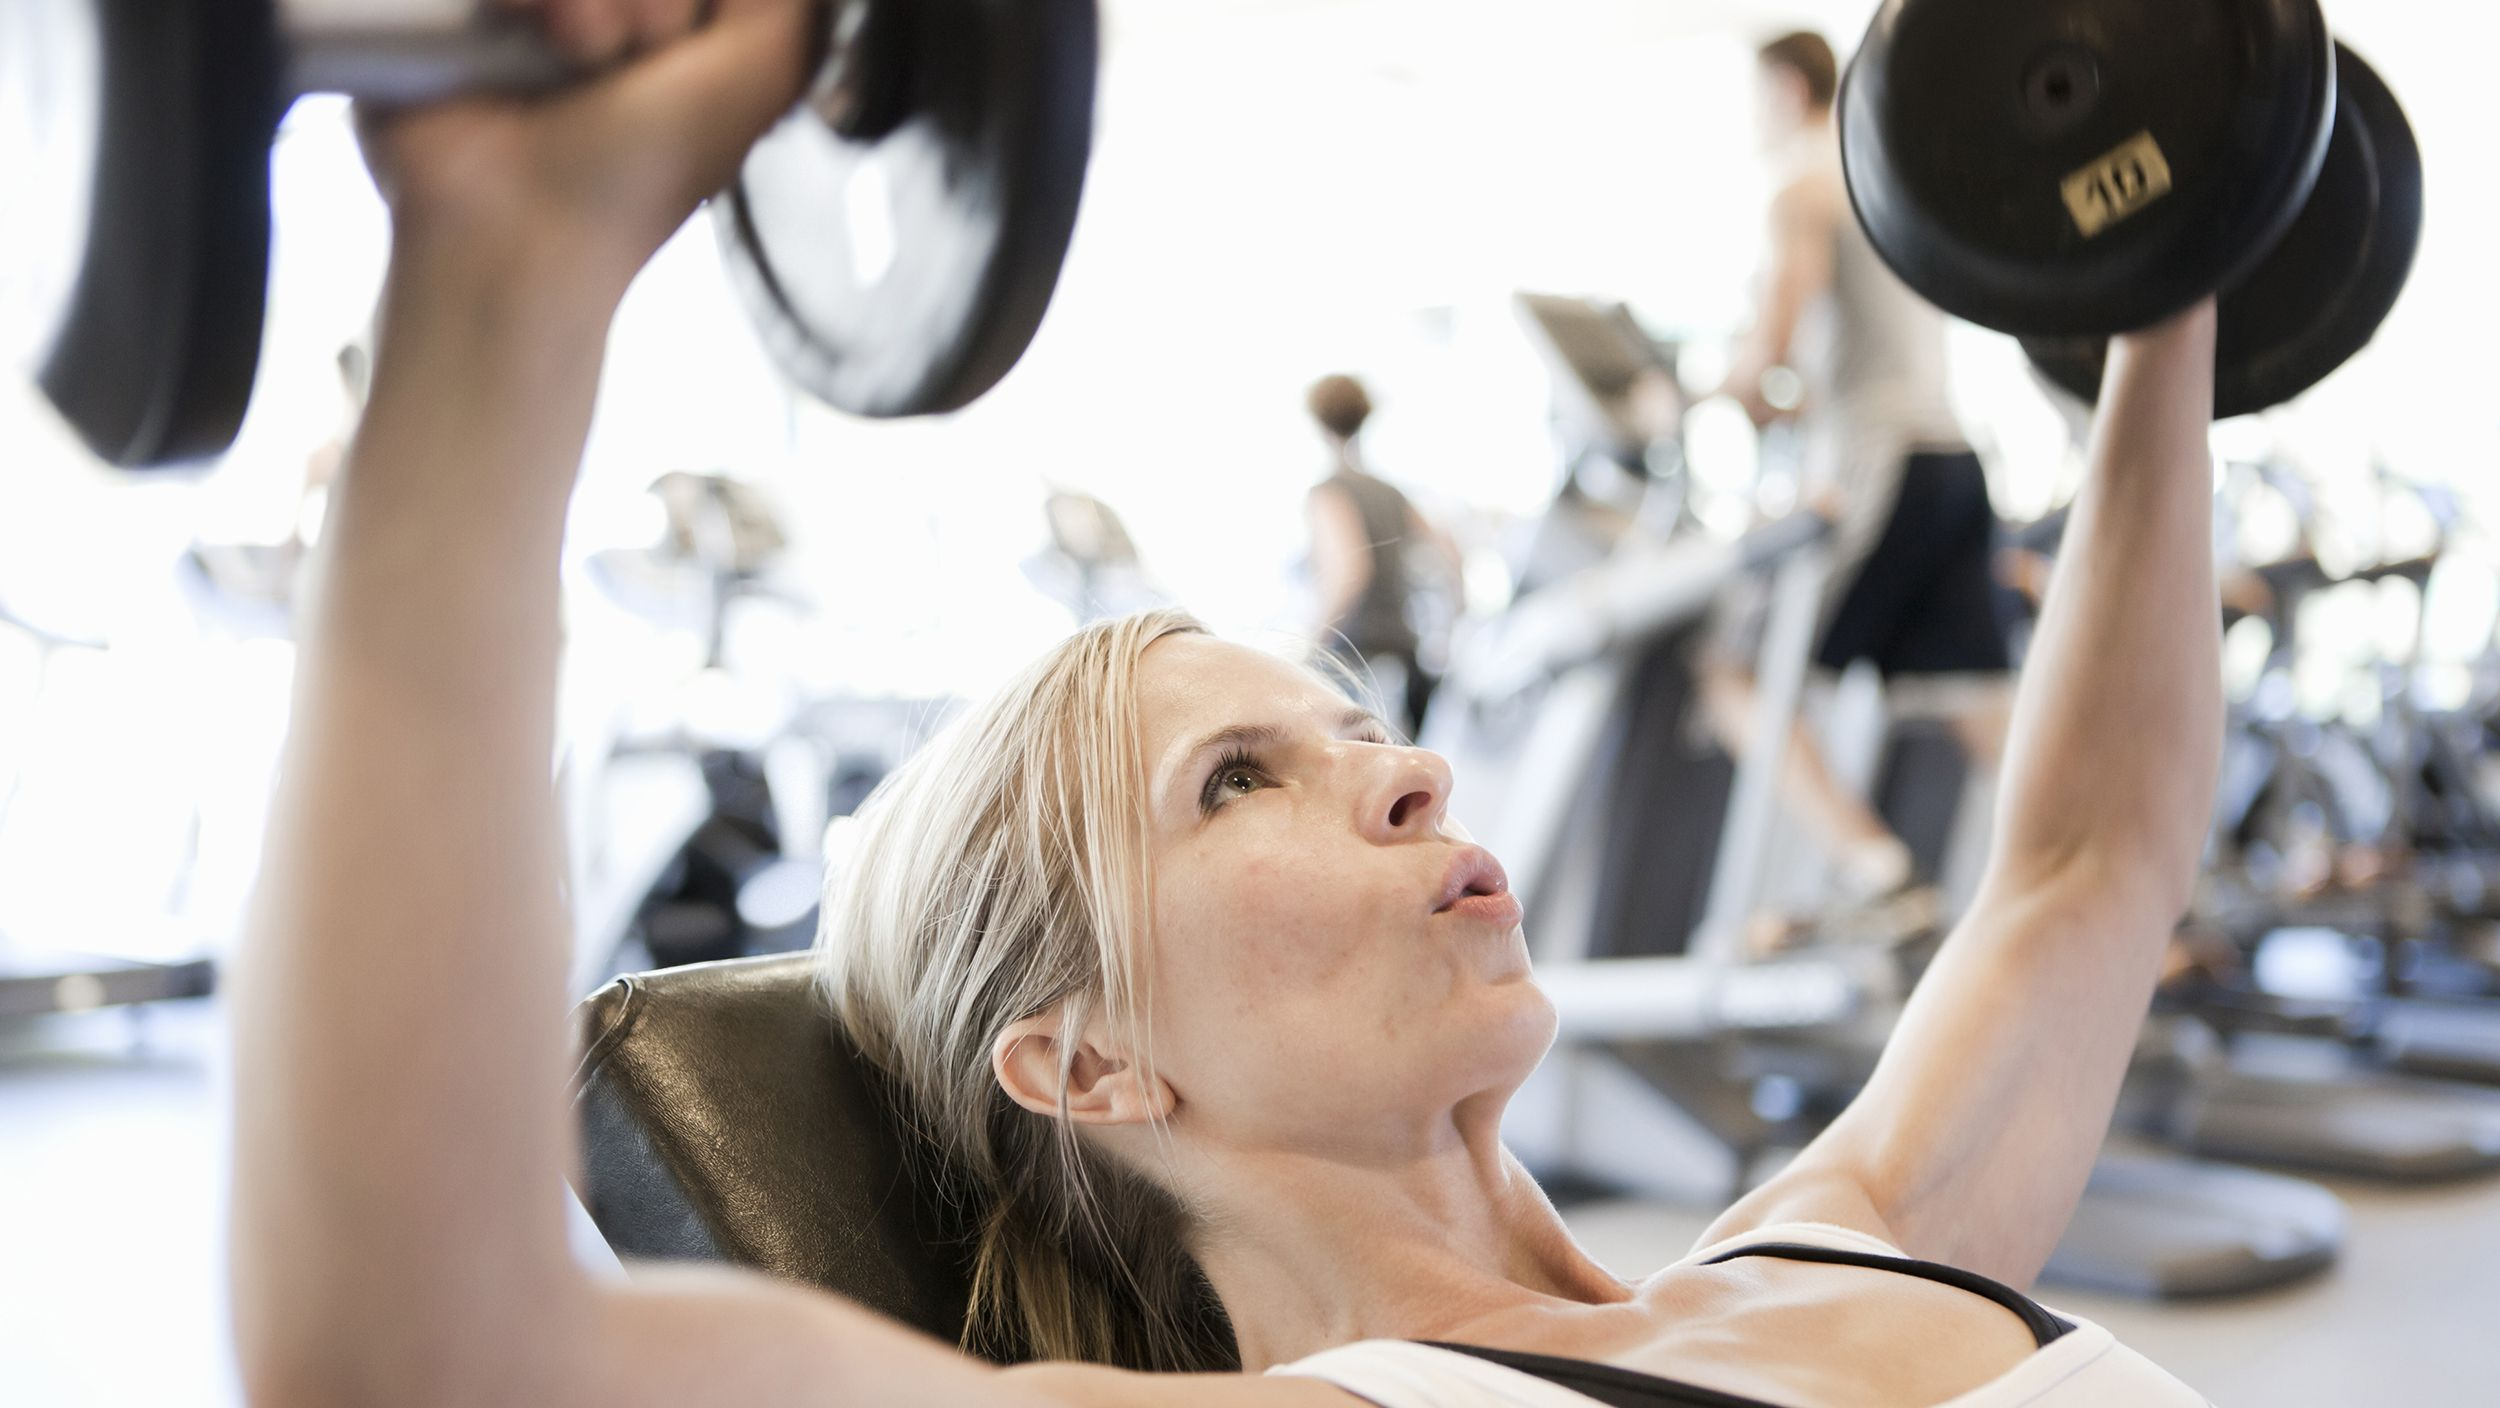 Want to join a gym? Summer may have best prices